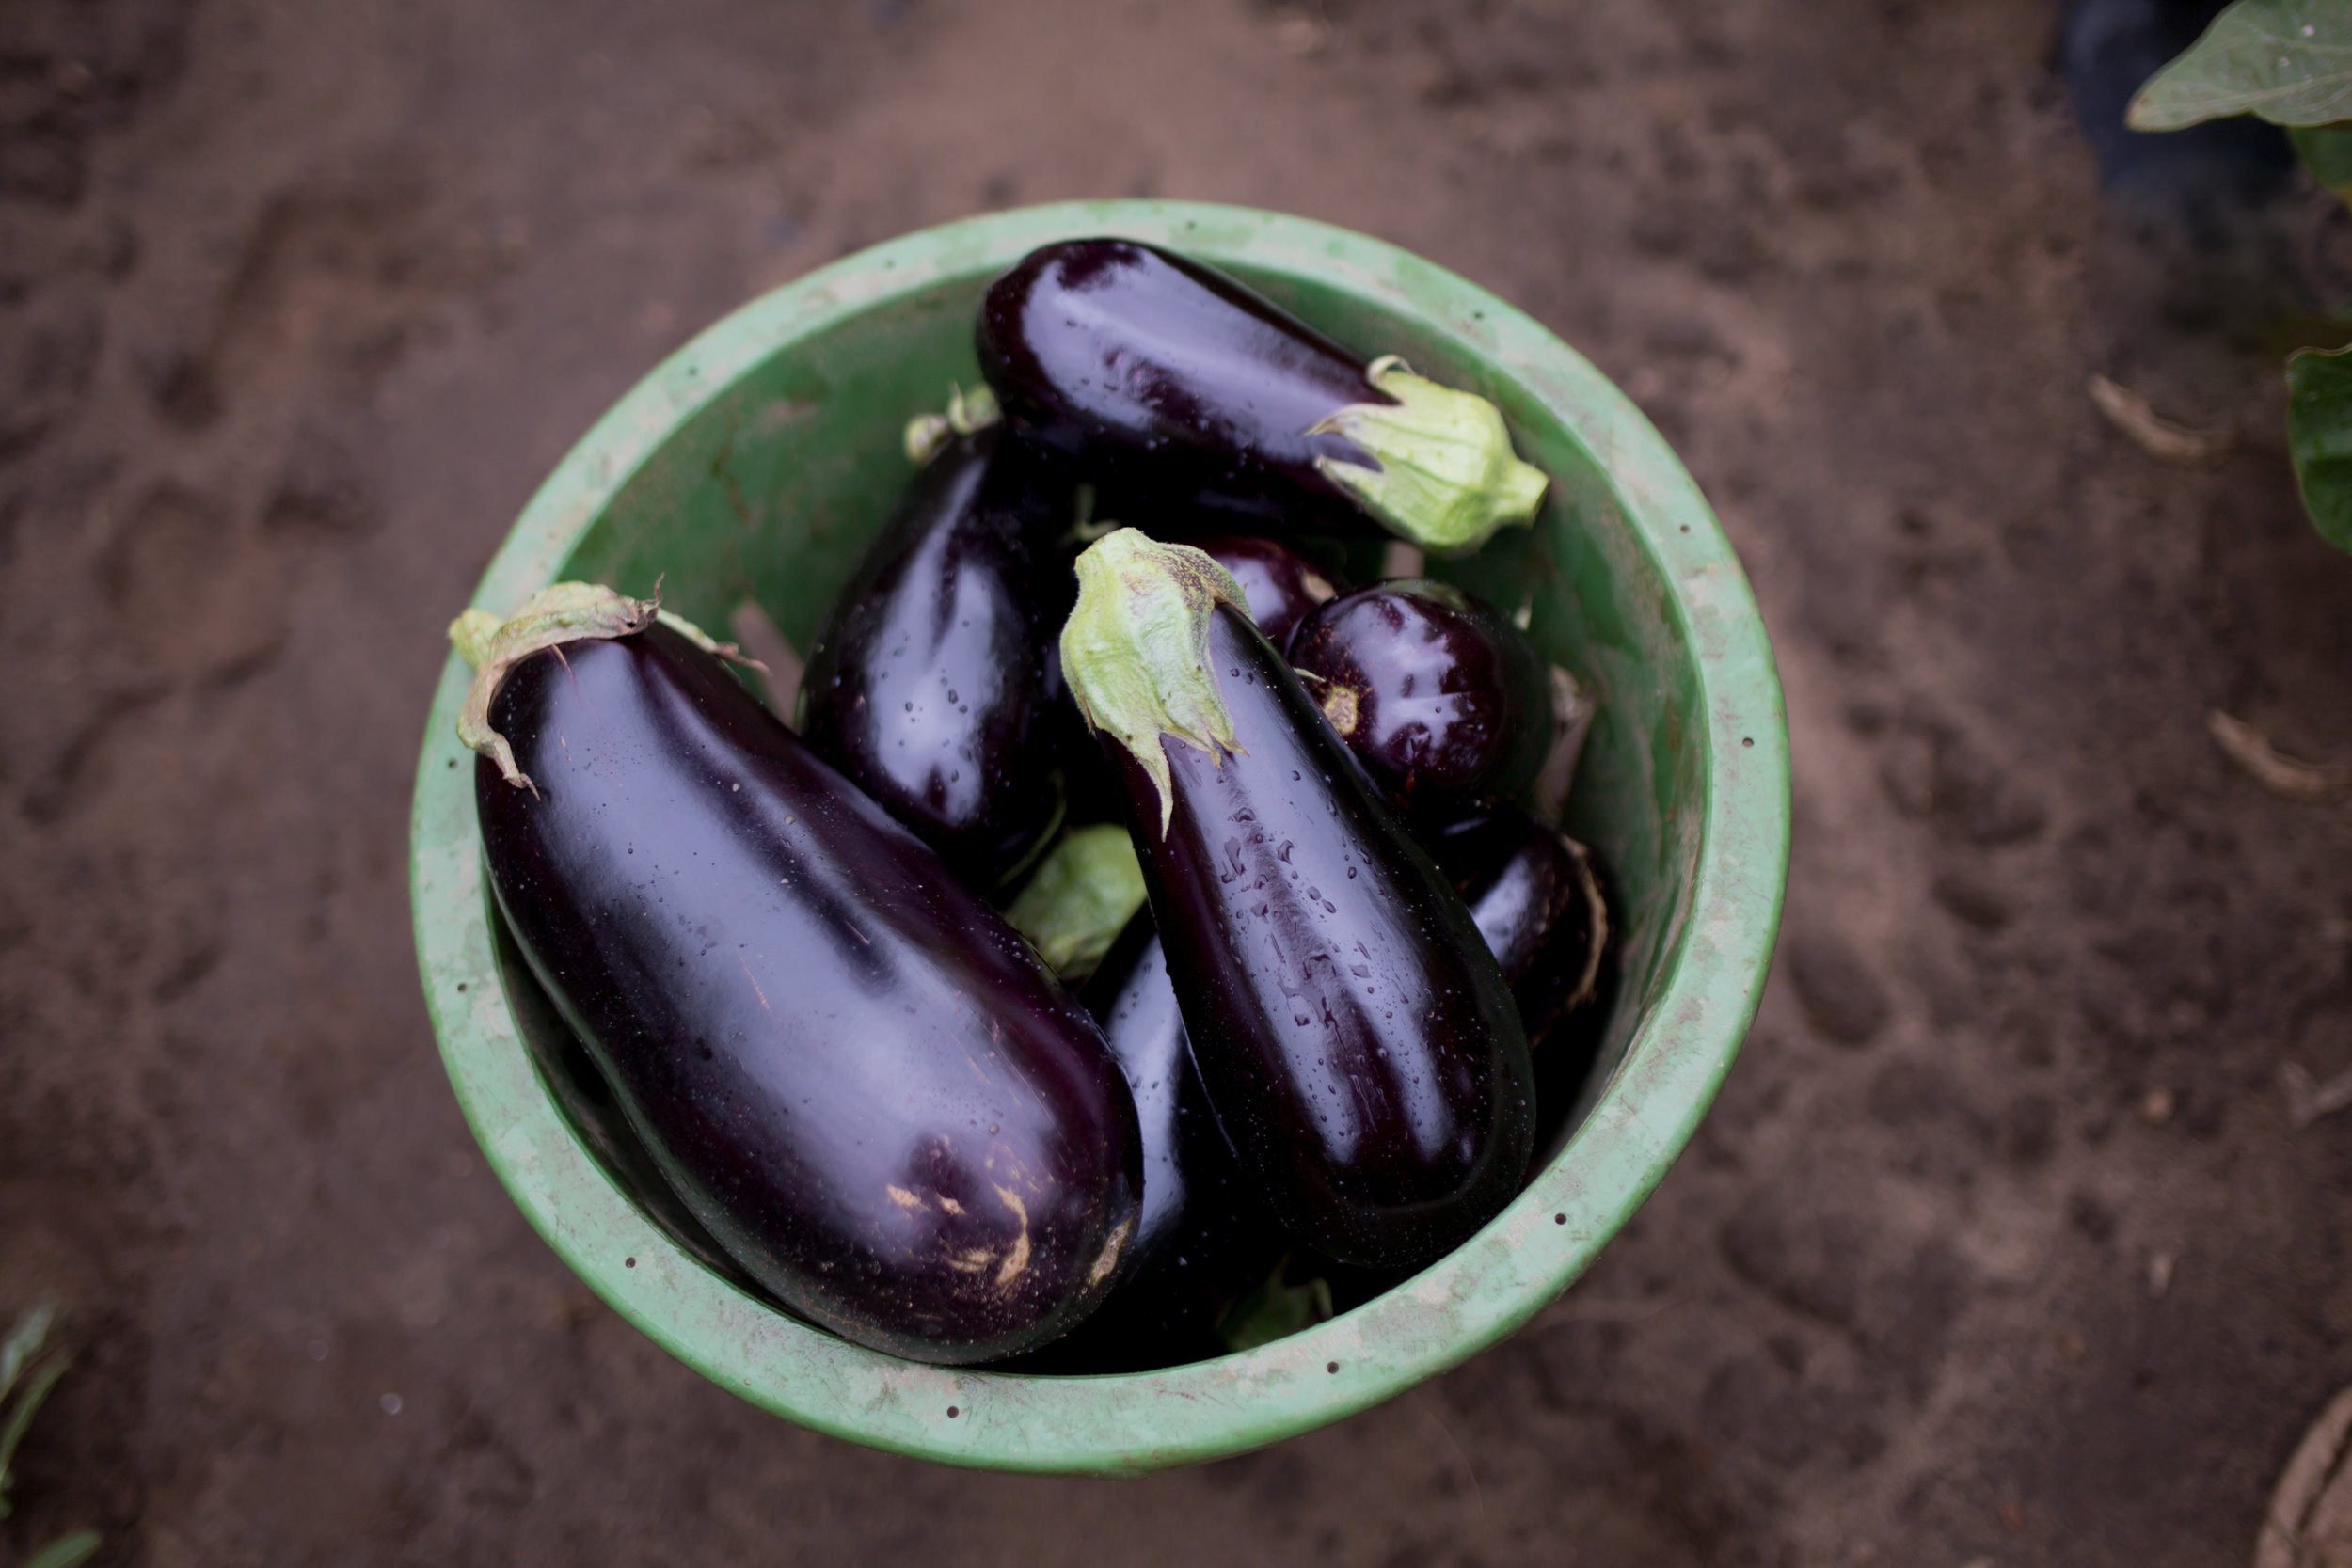 Buy Eggplant that are firm and glossy. Eat soon after purchase. -